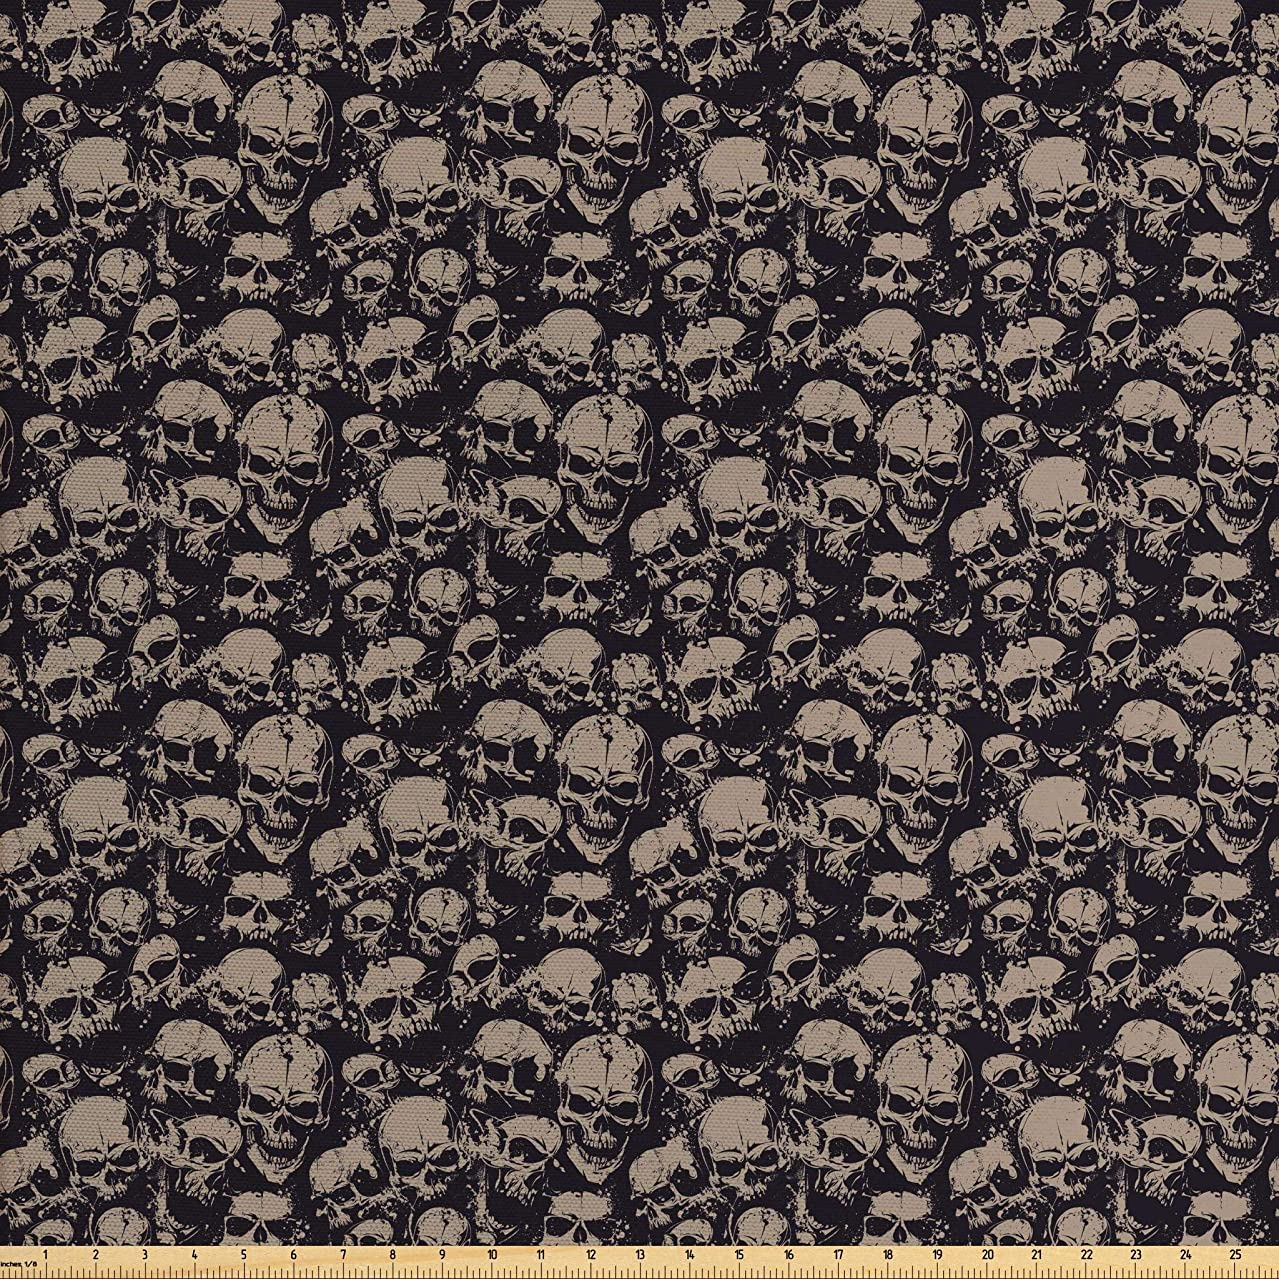 Ambesonne Skull Fabric by The Yard, Grunge Scary Skulls Sketchy Graveyard Death Evil Face Horror Theme Design, Decorative Fabric for Upholstery and Home Accents, 1 Yard, Charcoal Grey Tan